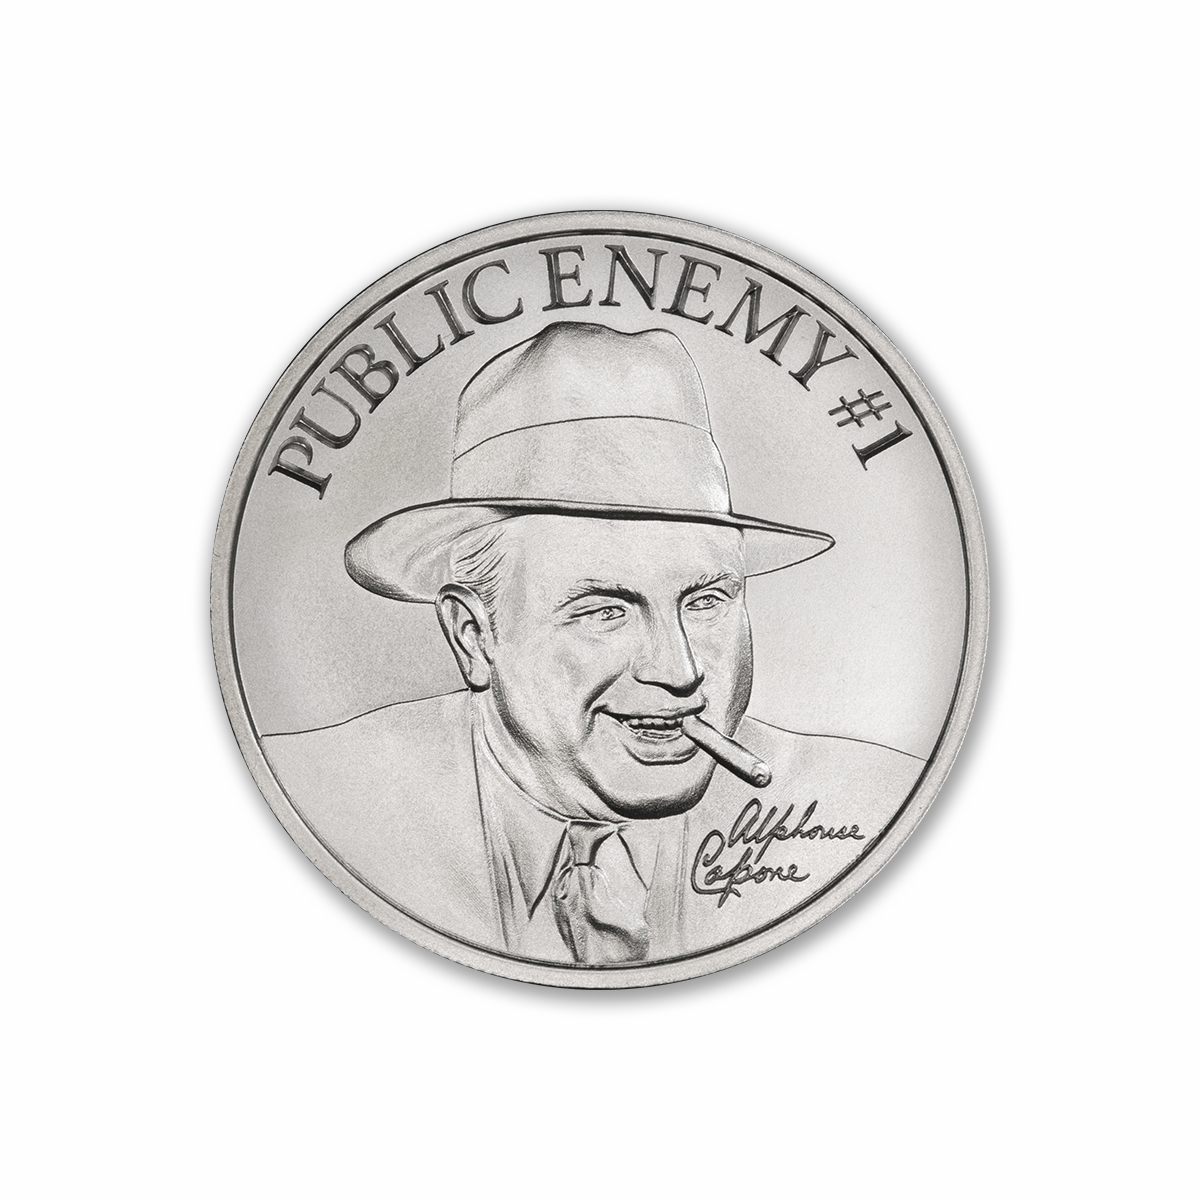 PUBLIC ENEMY #1 – ALPHONSE CAPONE –  1 TROY OUNCE – 39MM